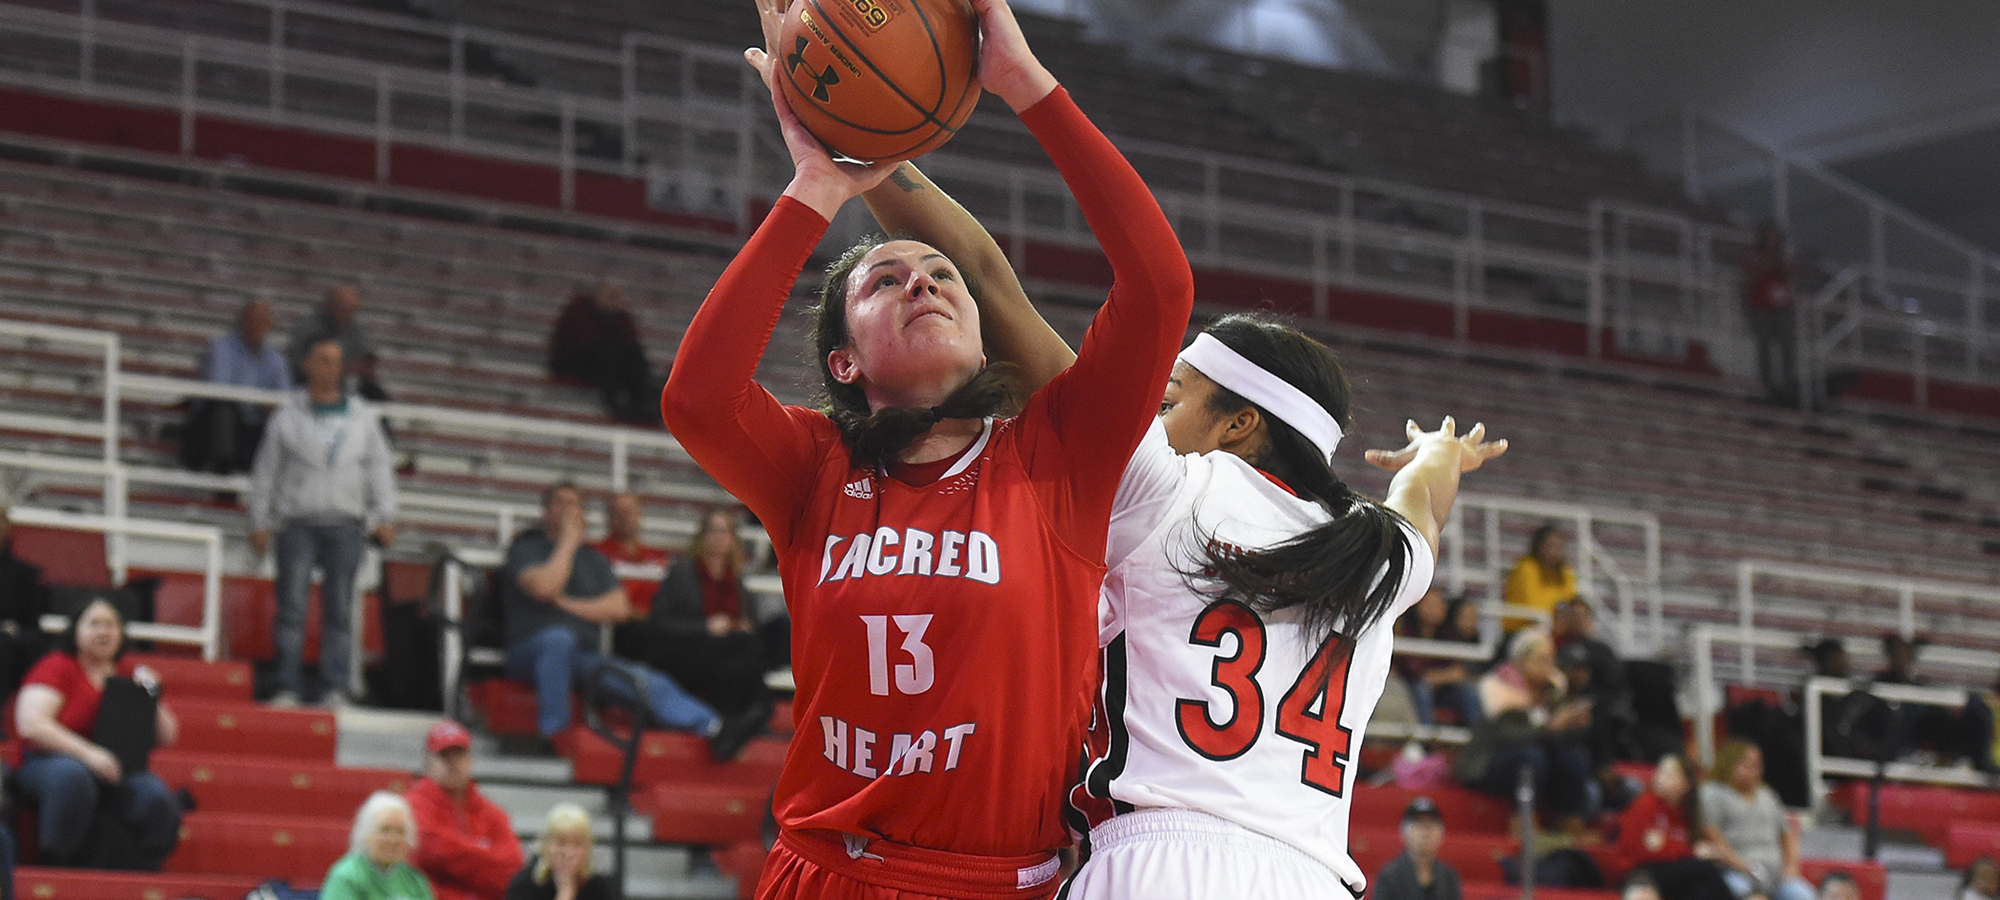 Haines Named Co-Player of the Week for the NEC